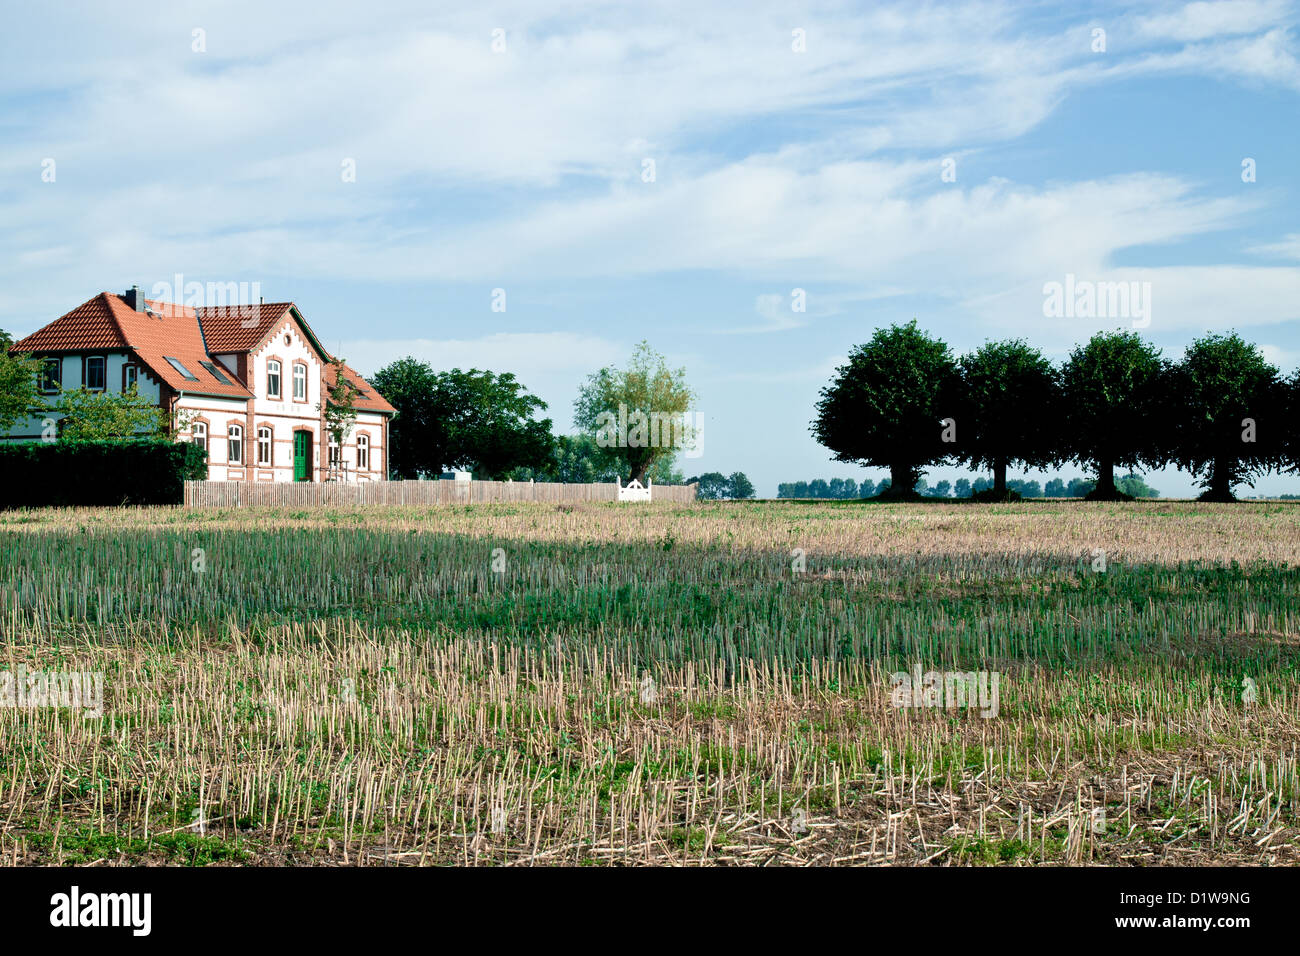 Countryside in Insel Poel, Germany Stock Photo